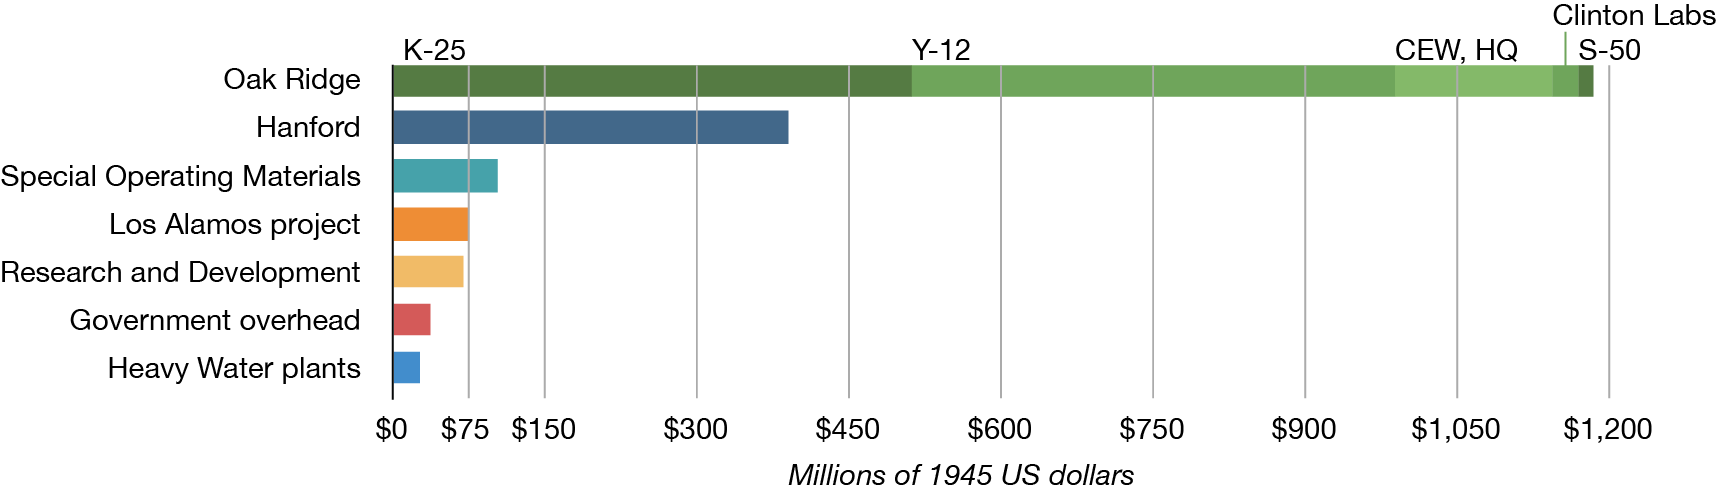 Manhattan Project costs chart